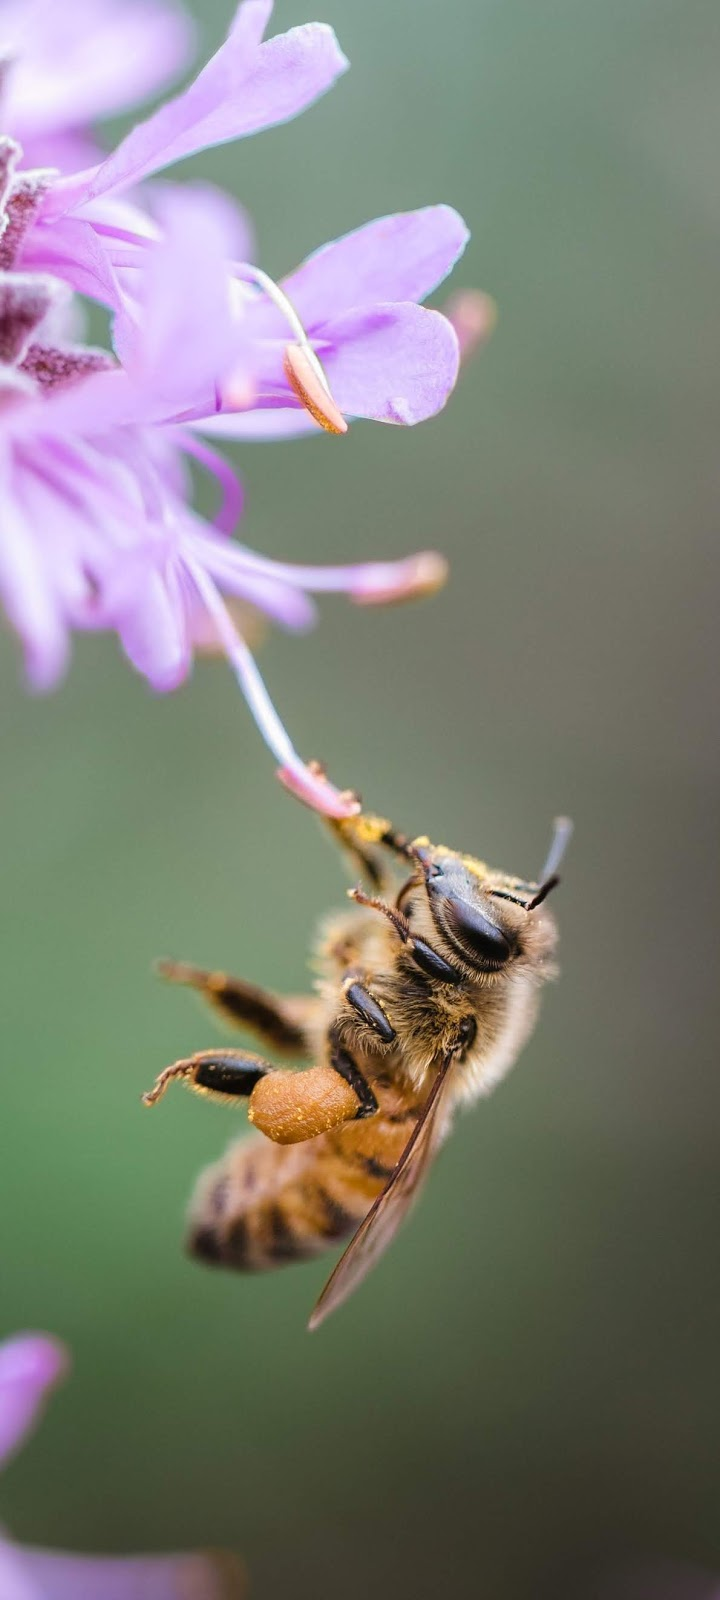 A bee on a stamen.